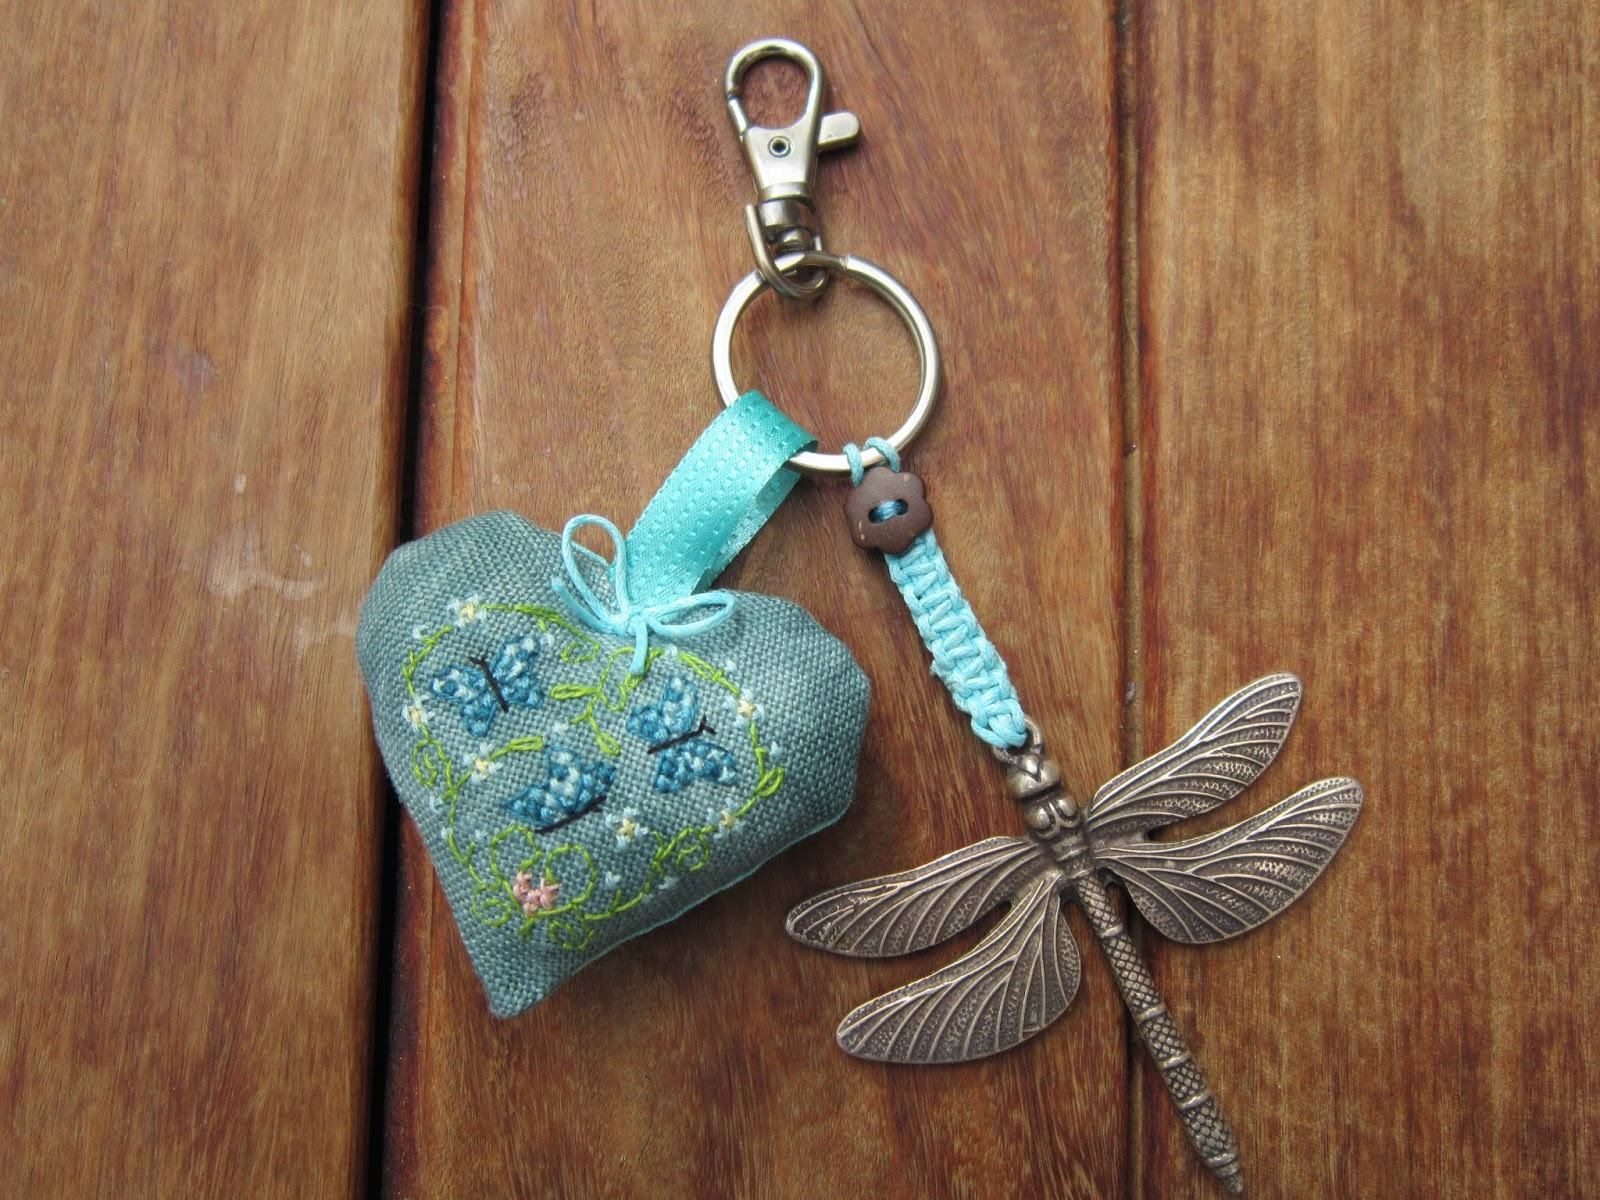 llavero, porte clefs, key holder, libelula, punto cruz, point croix, cross stitch, corazón, coeur, heart